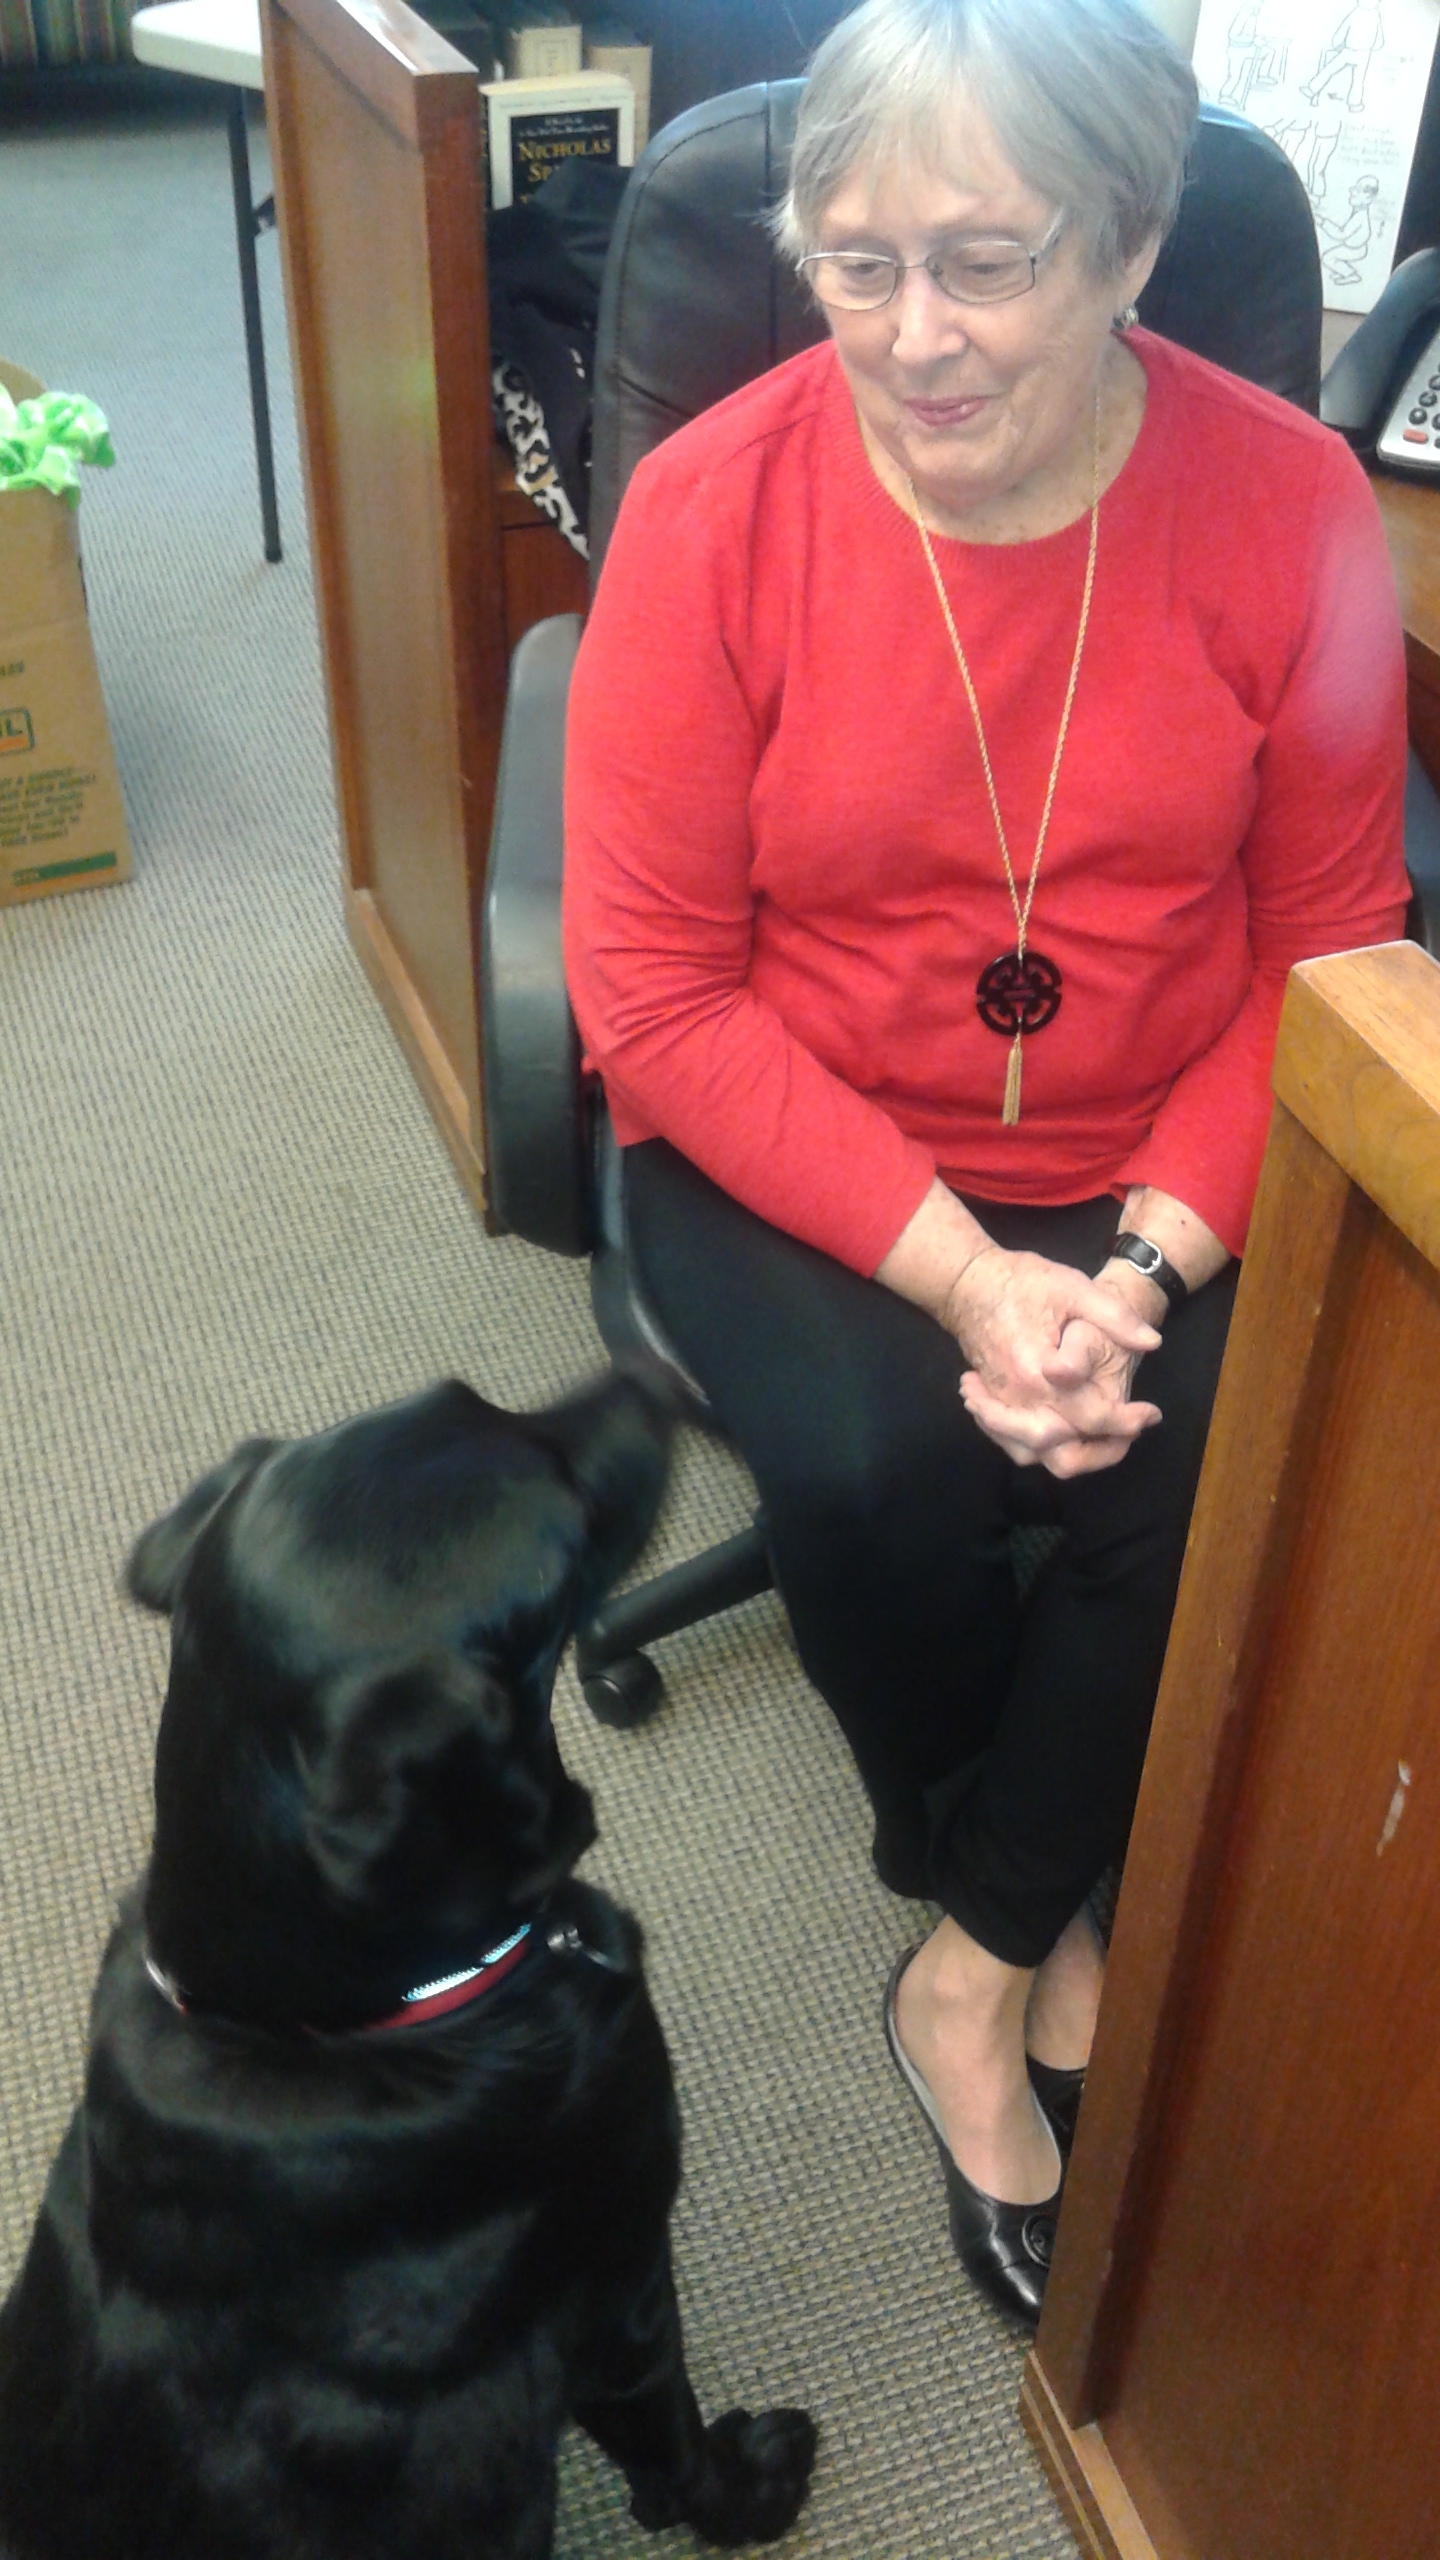 Peggy Roberts and Spike share a conversation at the reception desk.